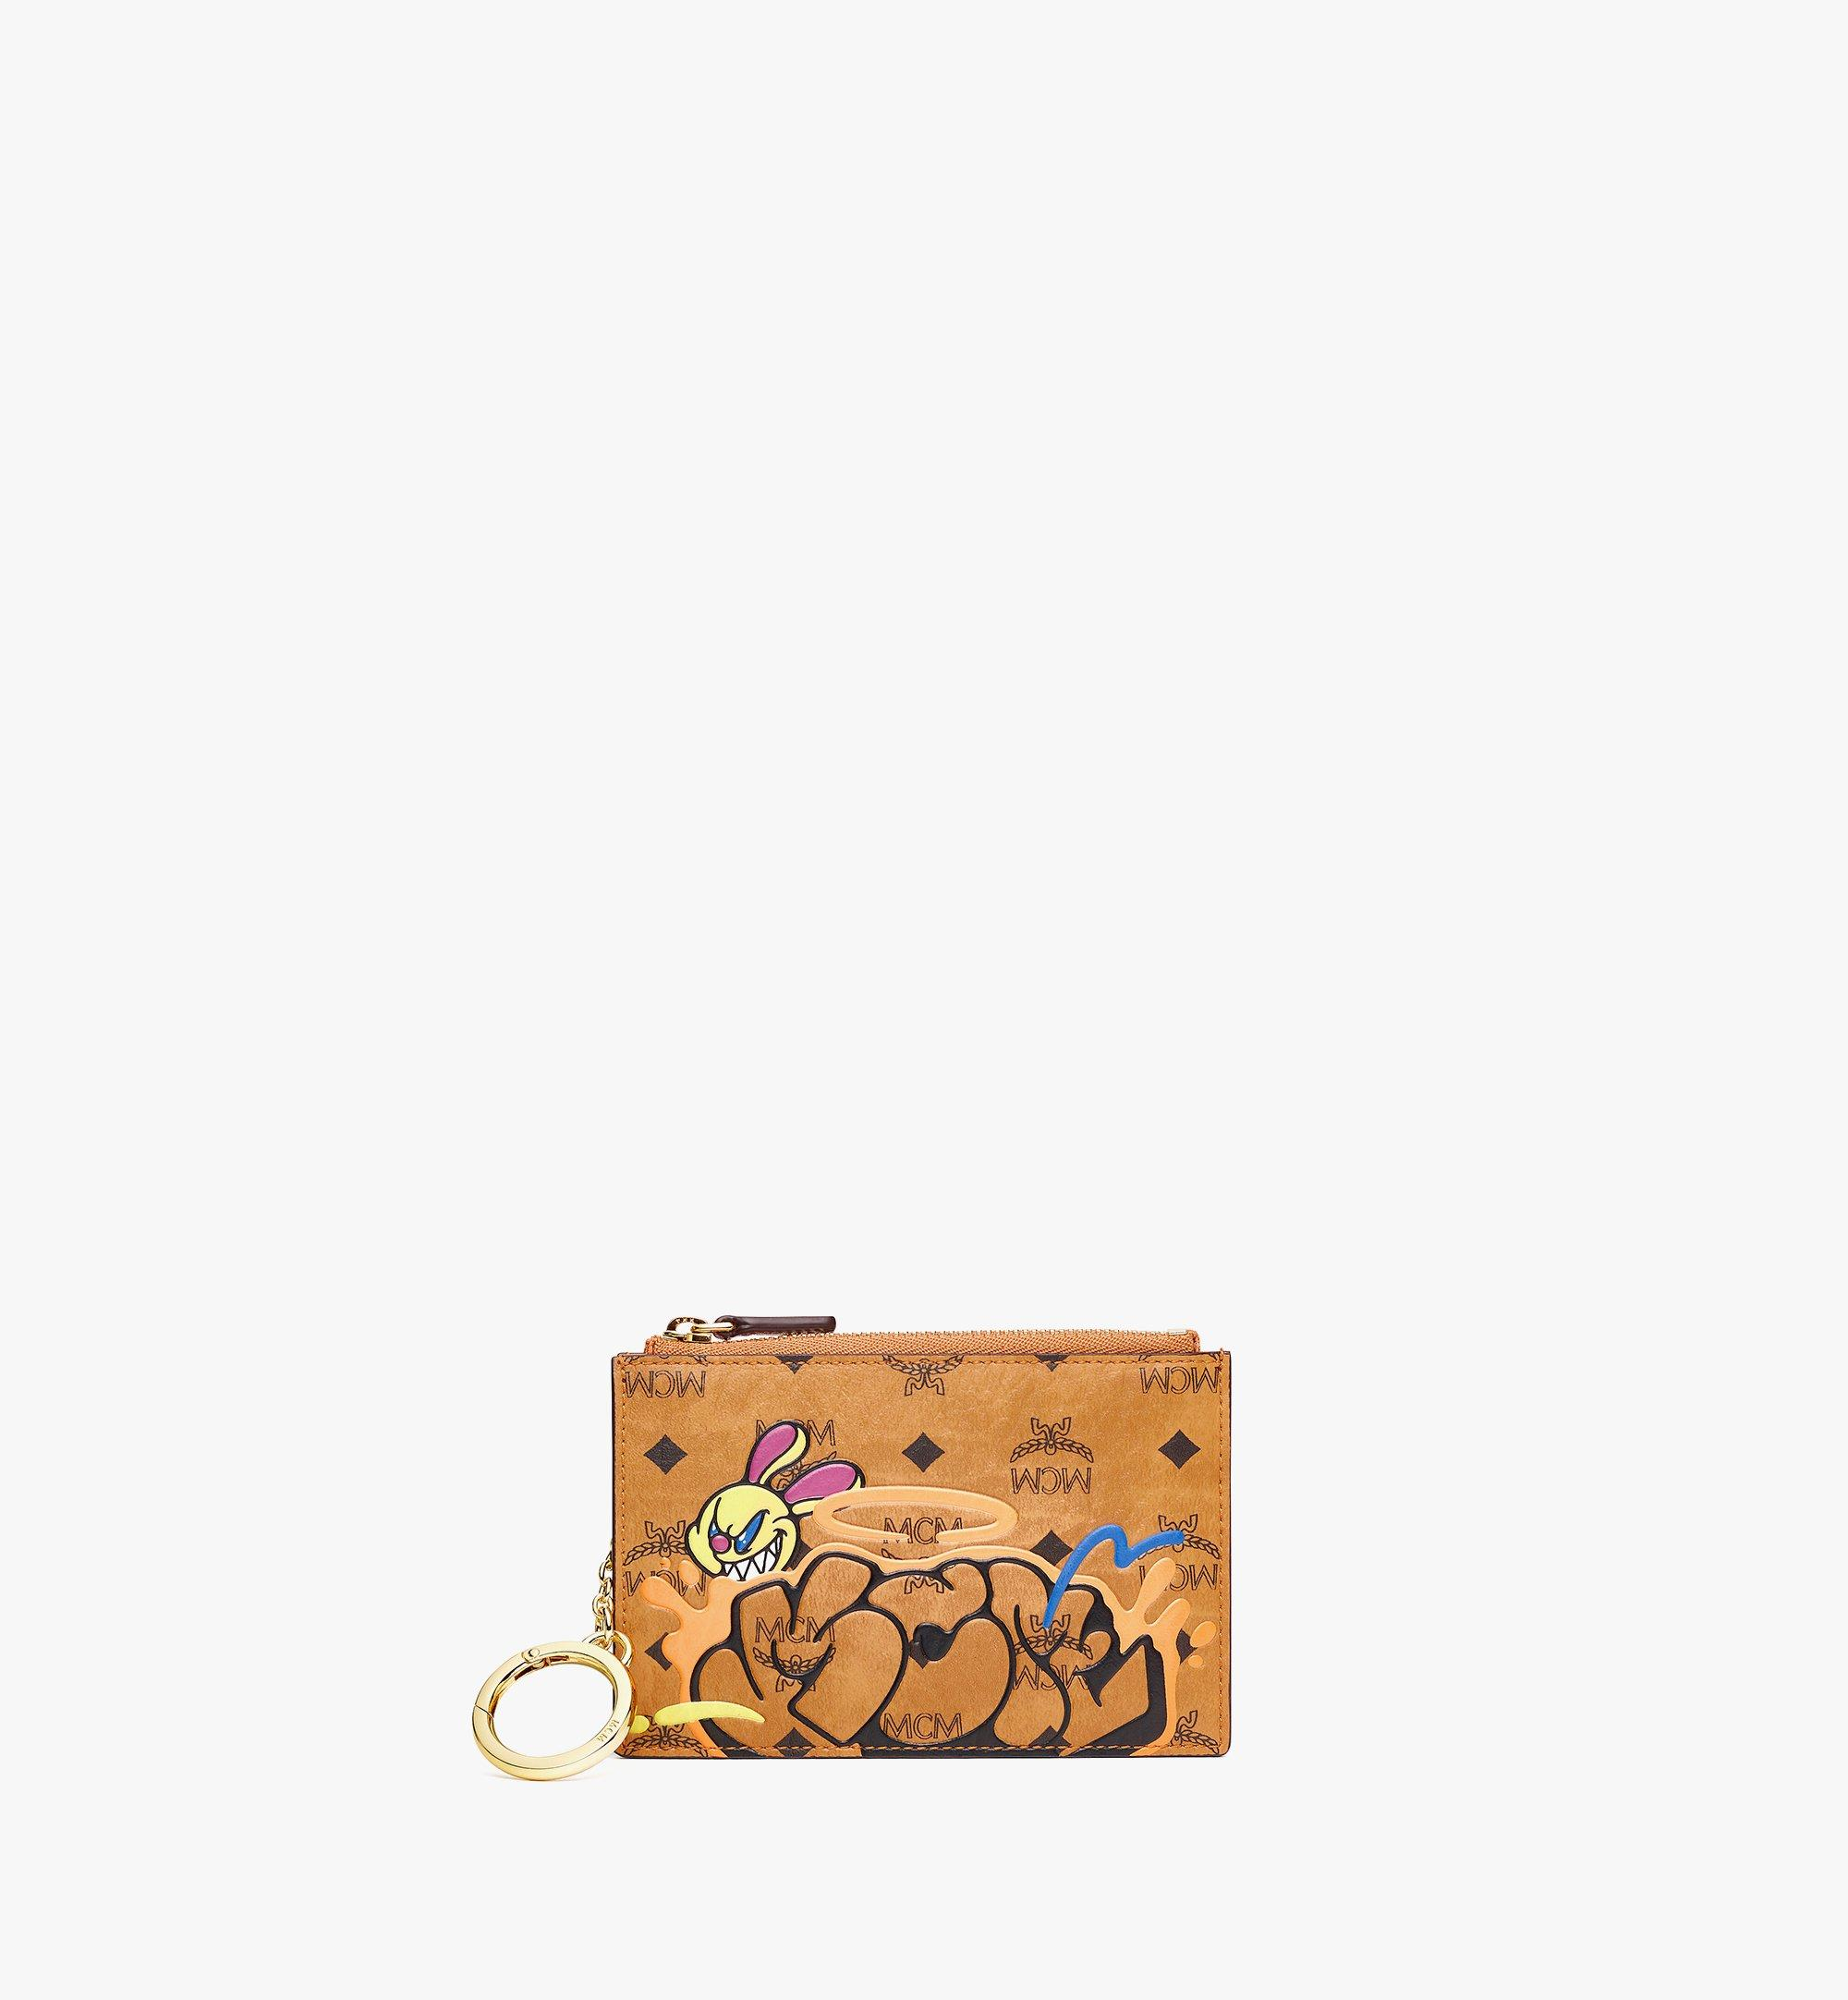 MCM MCM x SAMBYPEN Key Pouch in Visetos Cognac MXKBASP01CO001 Alternate View 1